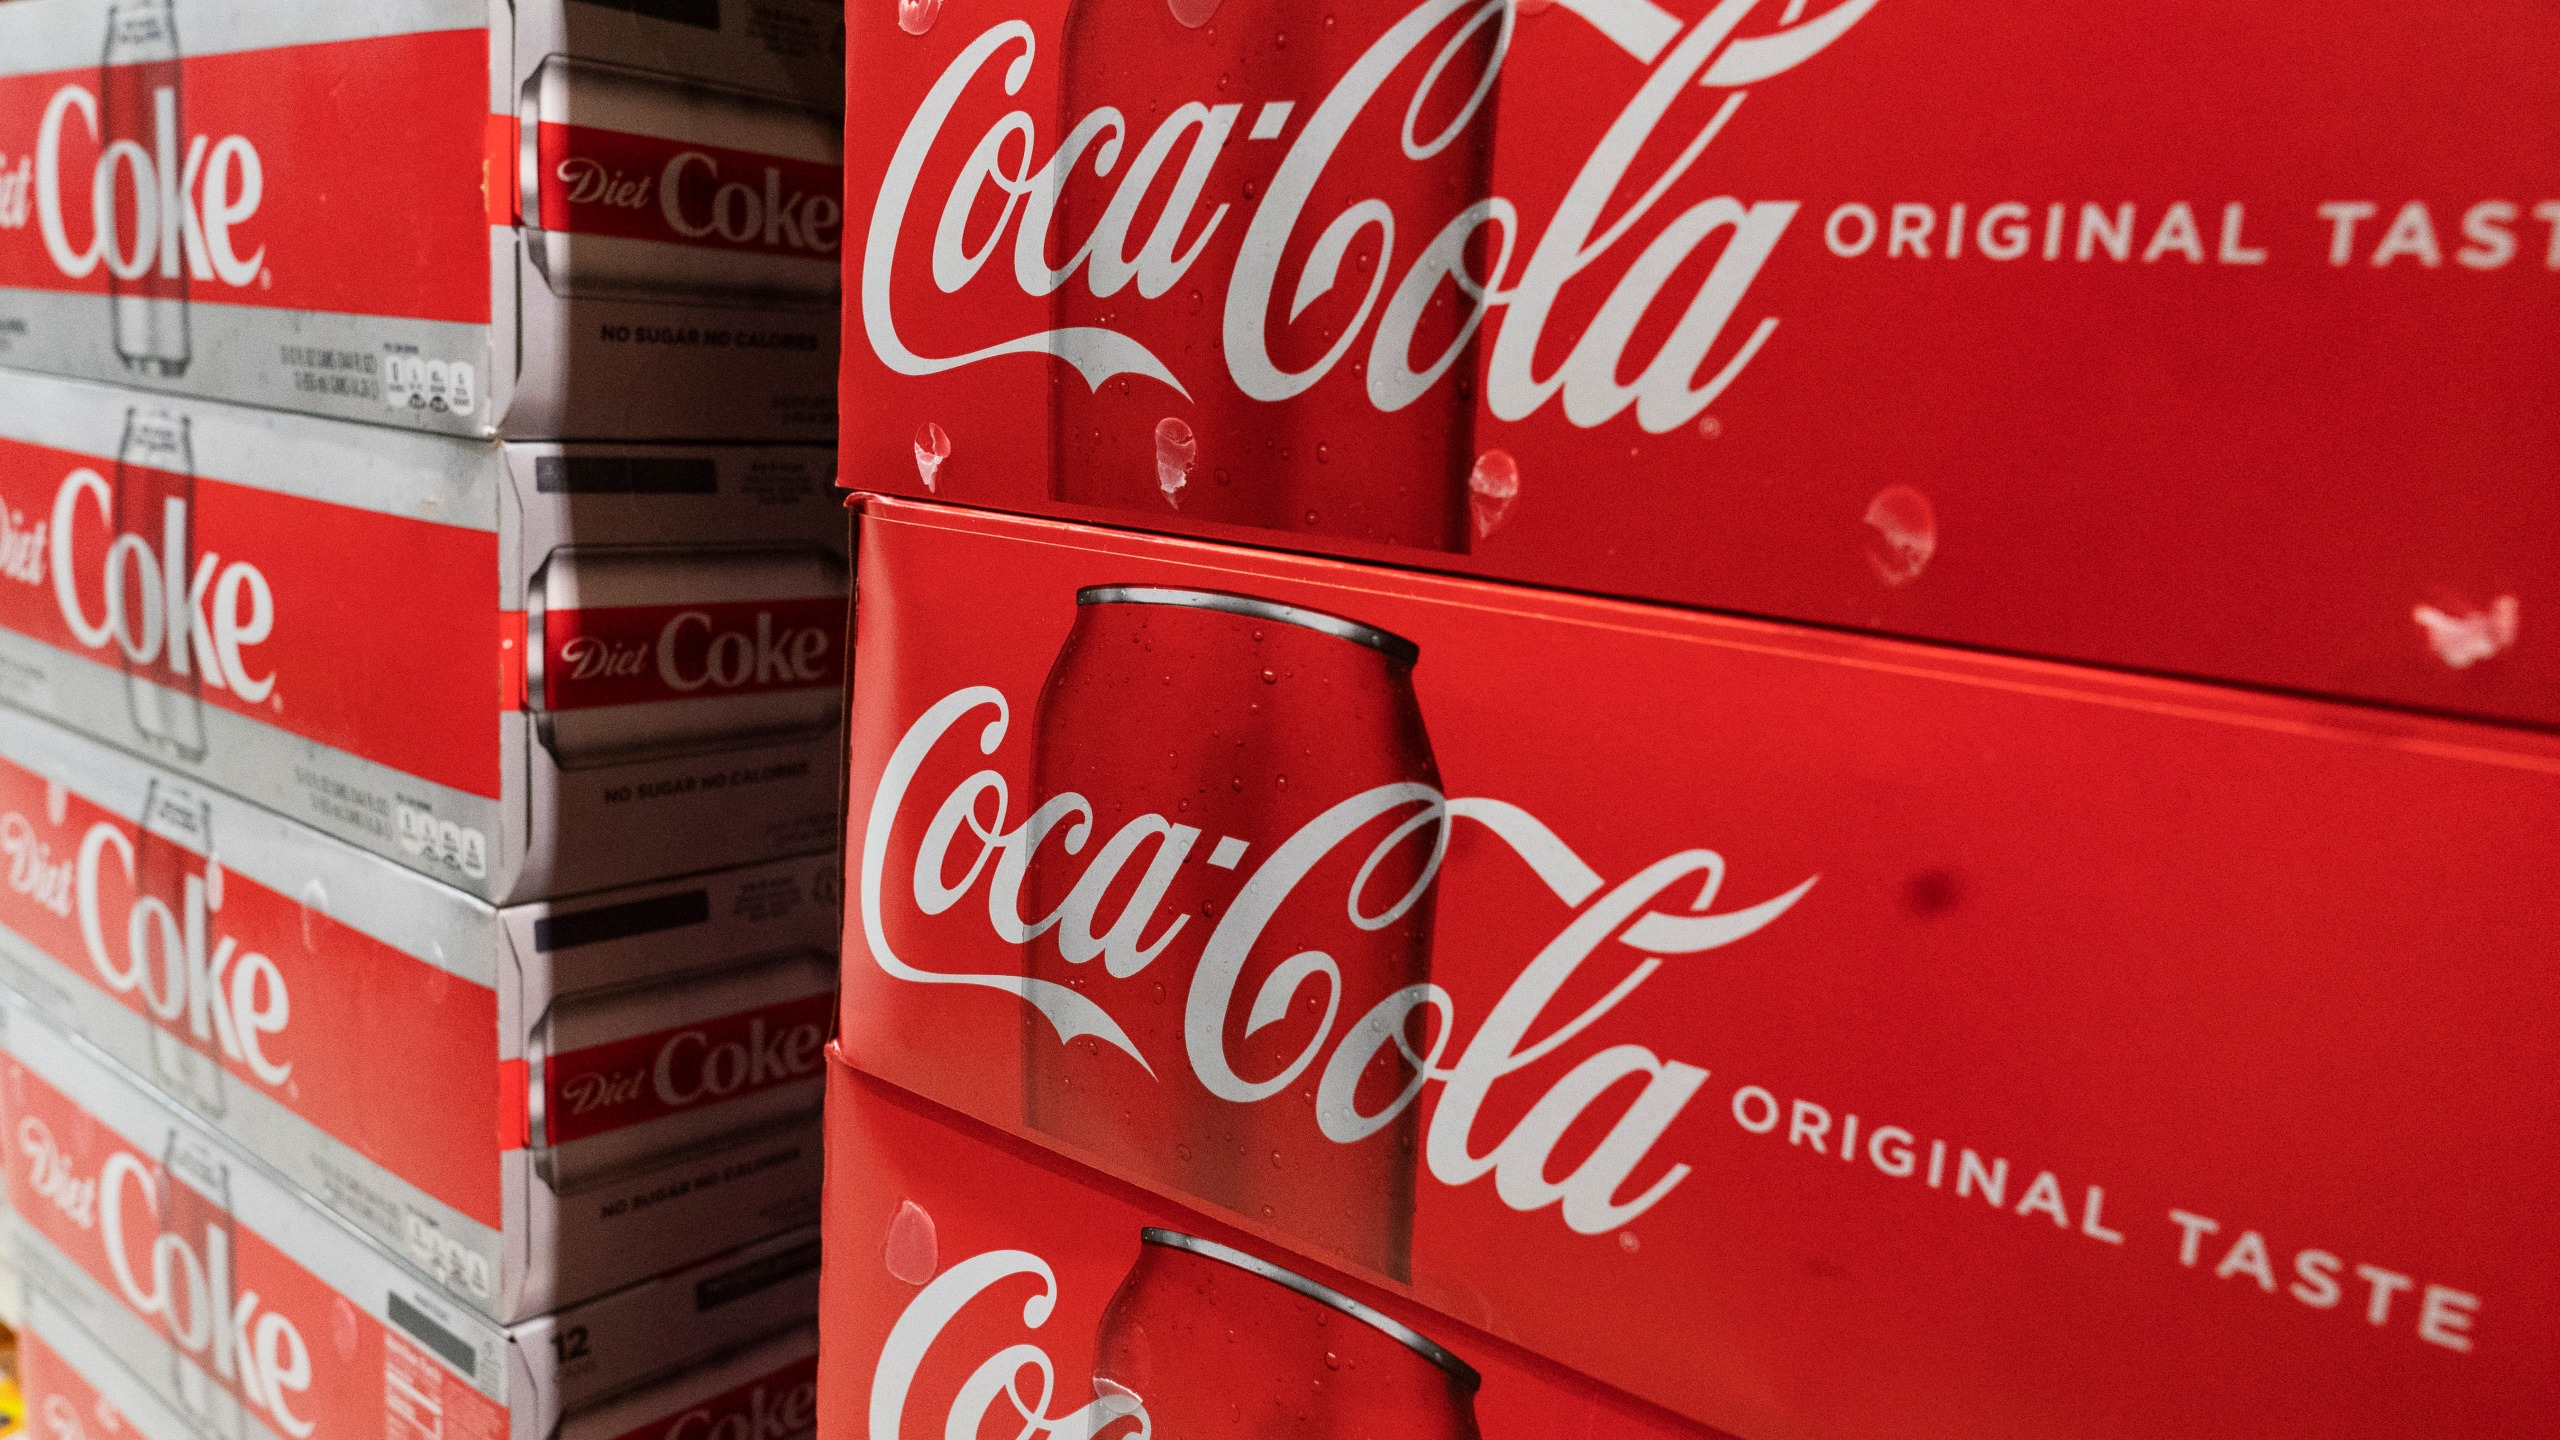 In this Monday, April 5, 2021 file photo, cases of Coca-Cola are displayed in a supermarket, in New York. Coca-Cola Co. (AP Photo/Mark Lennihan, File)